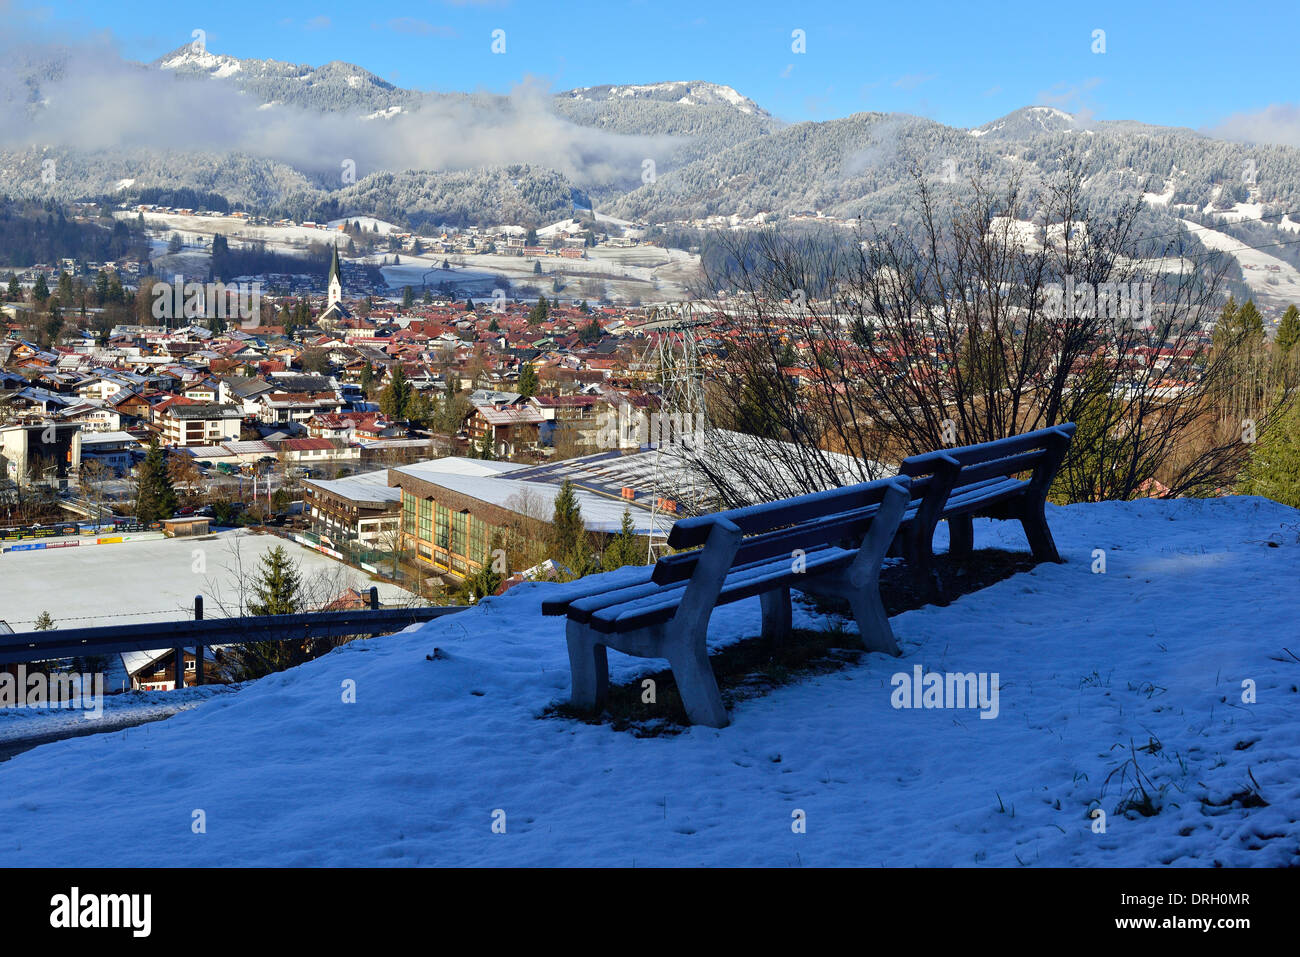 Above Oberstdorf in the Allgäu in winter with a snow fall  looking down upon the town - Stock Image